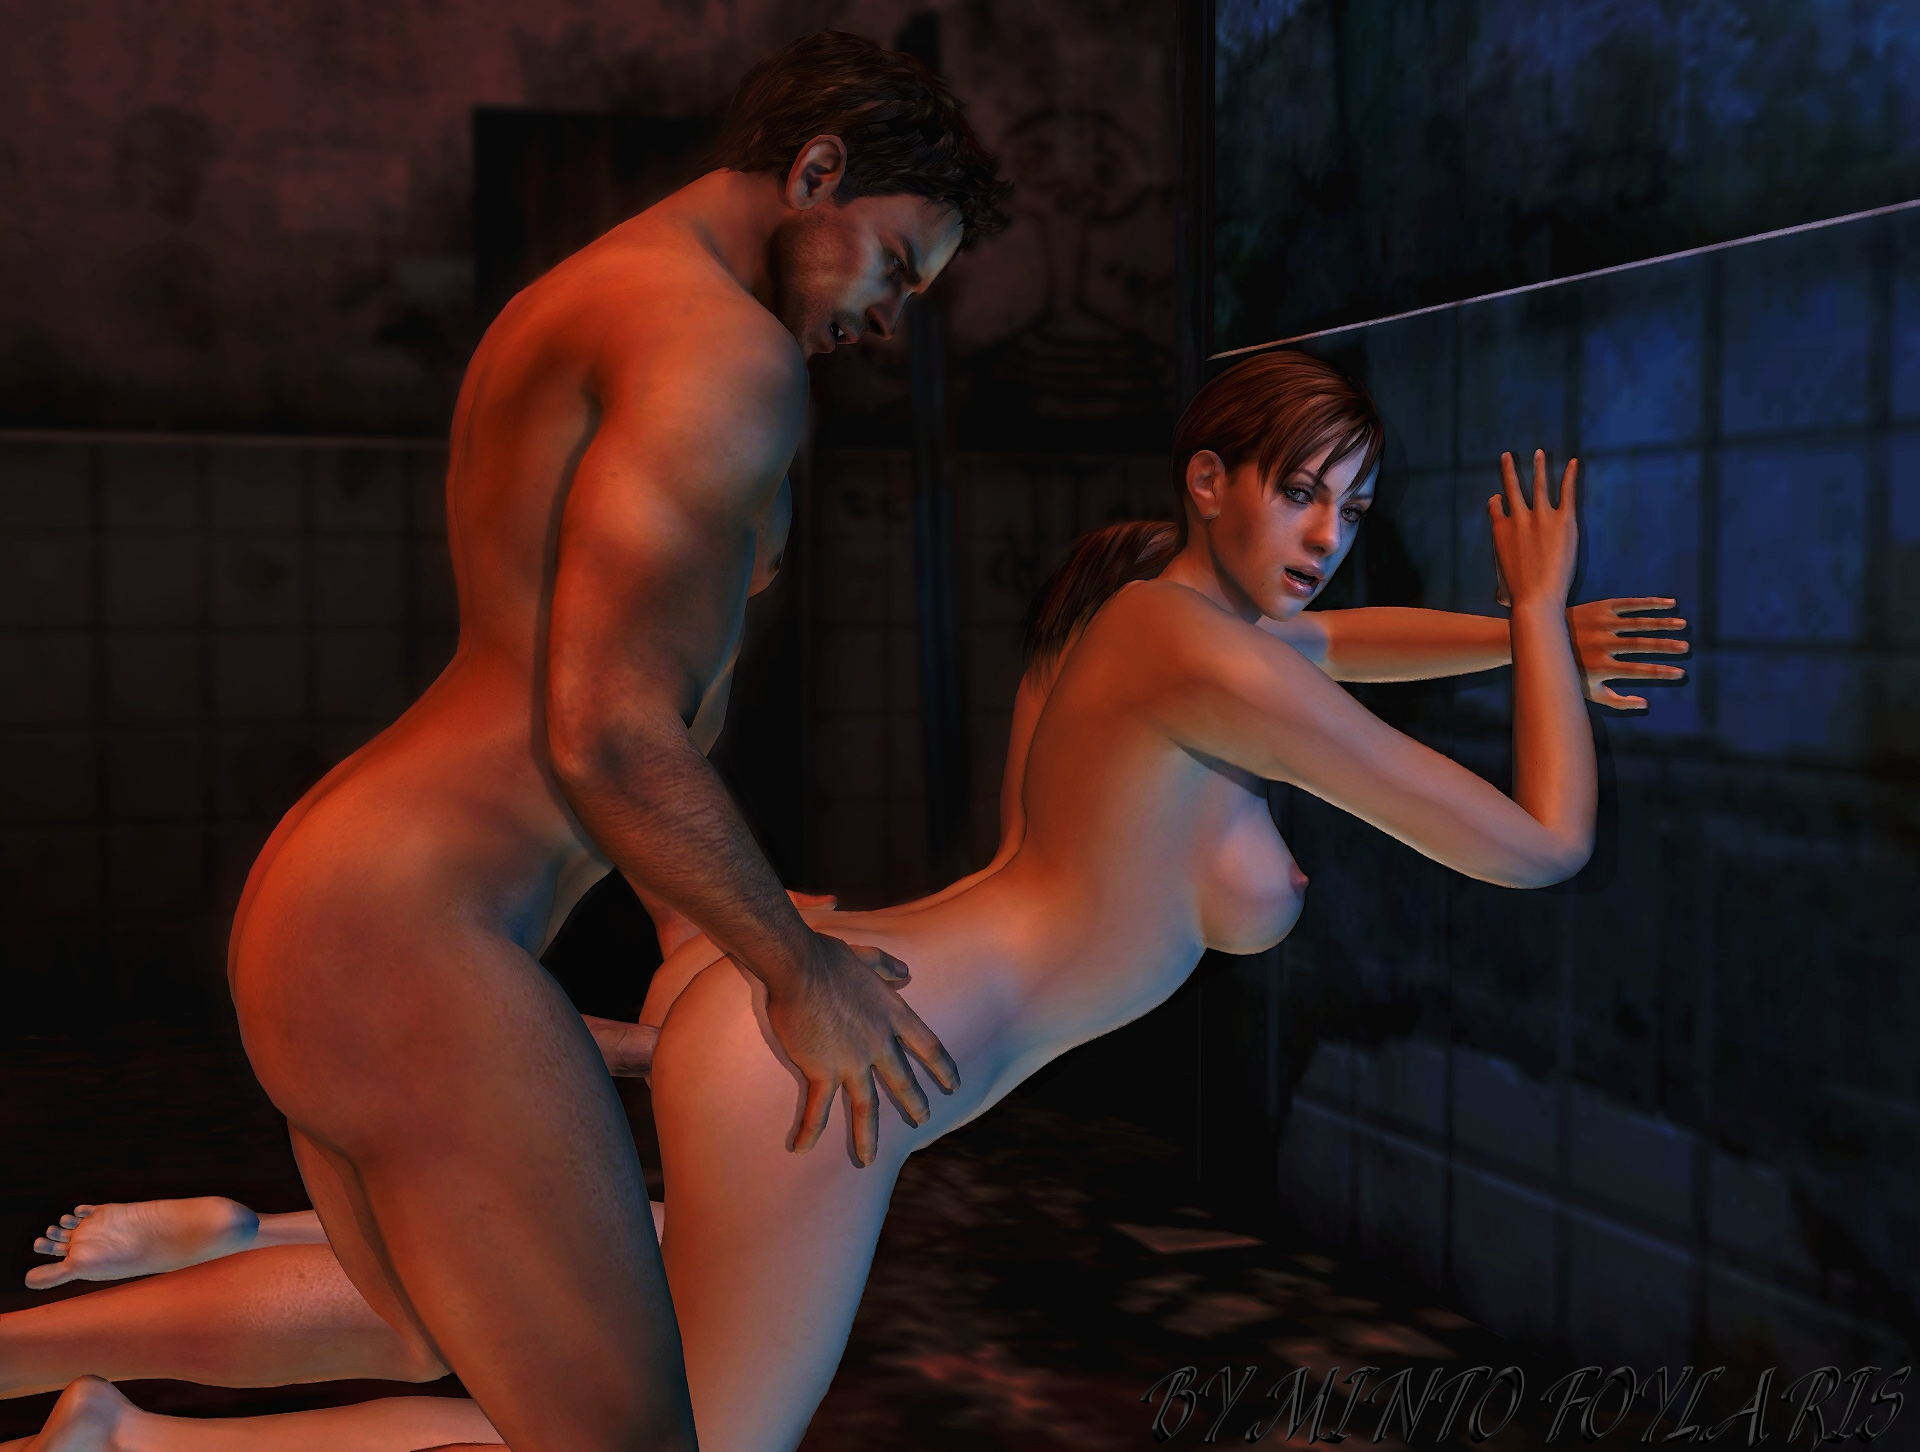 Jill valentine porn picture xxx photos